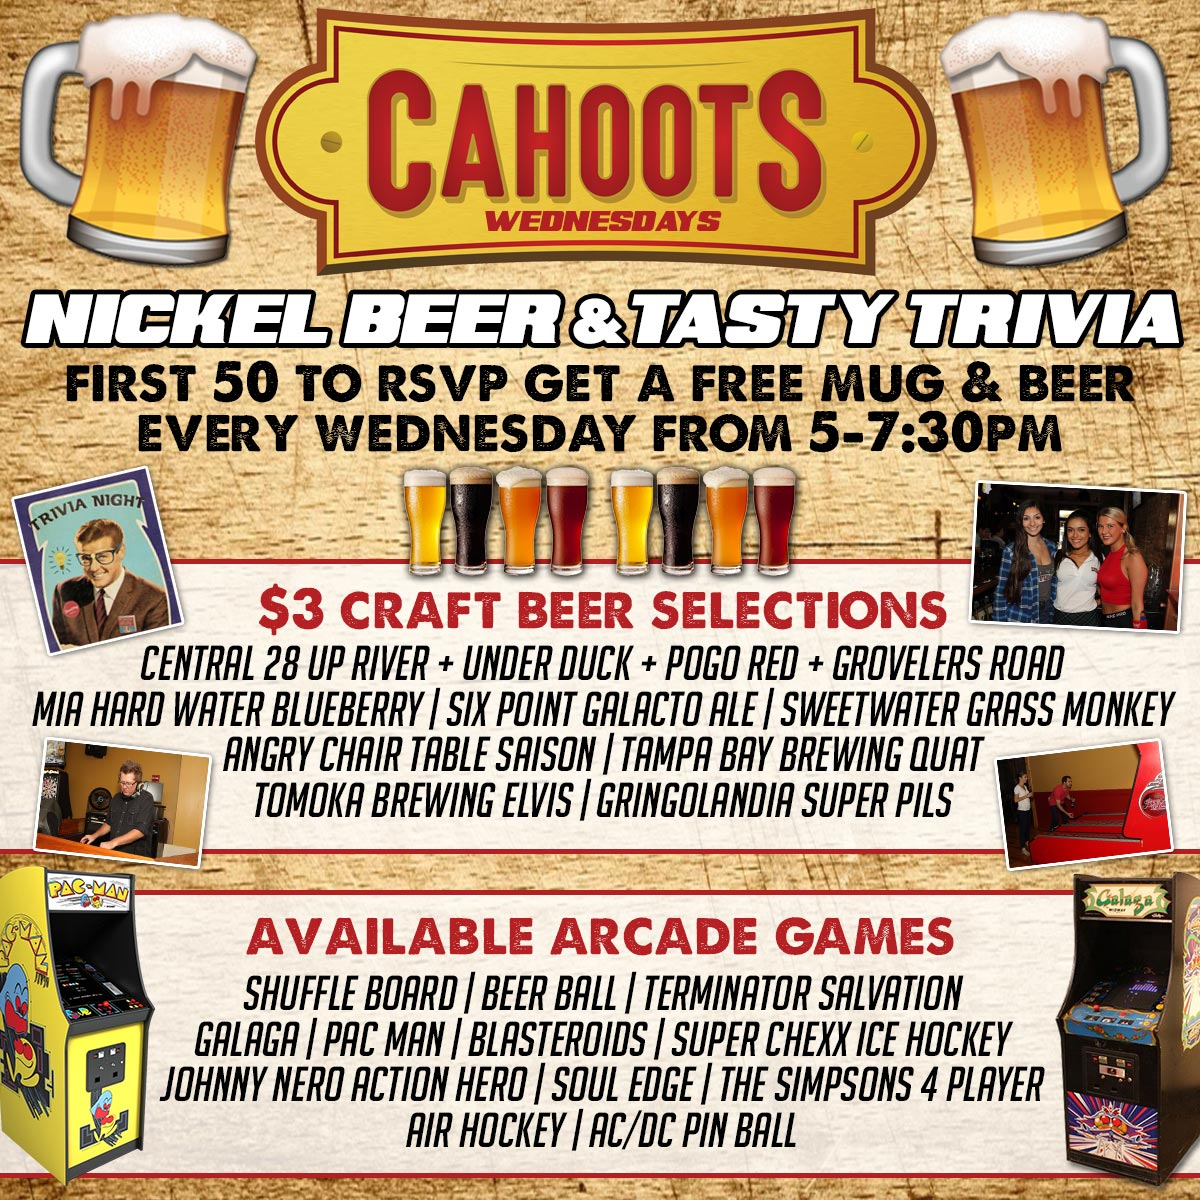 Cahoots Nickel Beer & Tasty Trivia